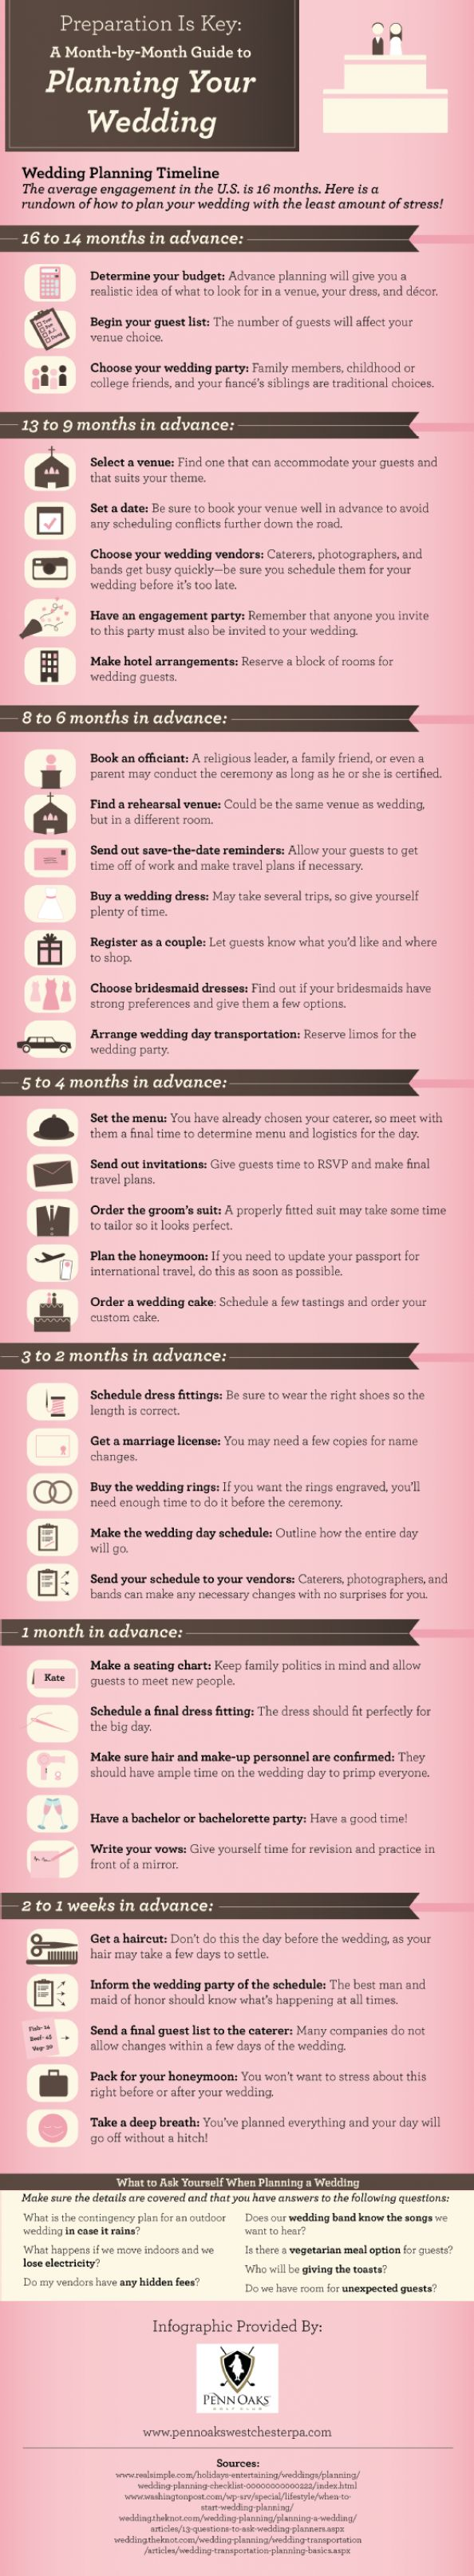 This is the best one I've seen! Very detailed and practical.   Preparation Is Key: A Month-by-Month Guide to Planning Your Wedding